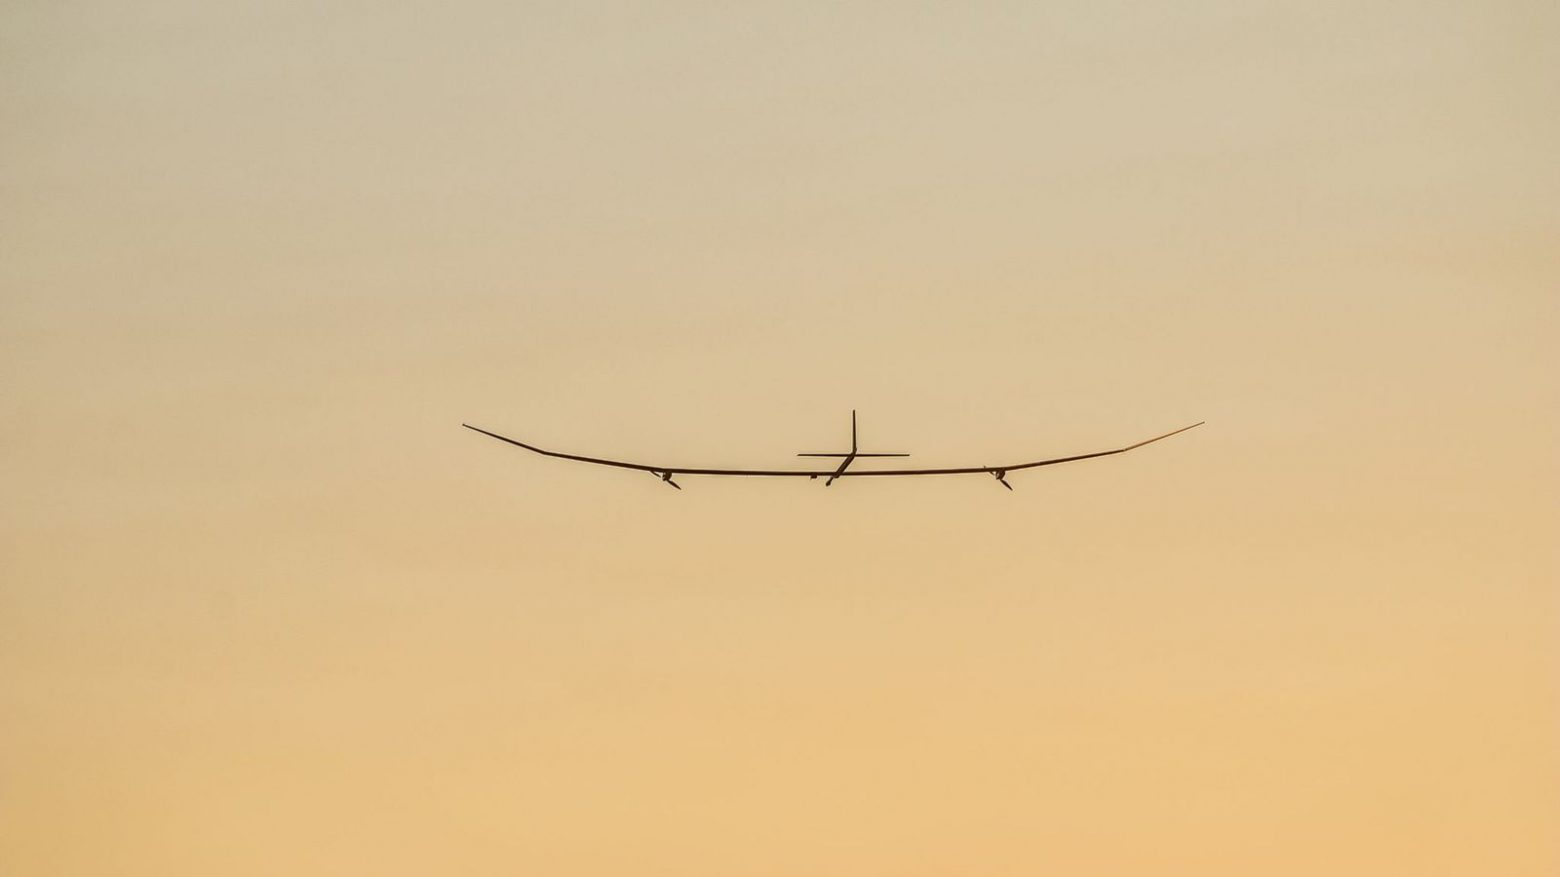 PHASA-35 electric drone makes its first flight